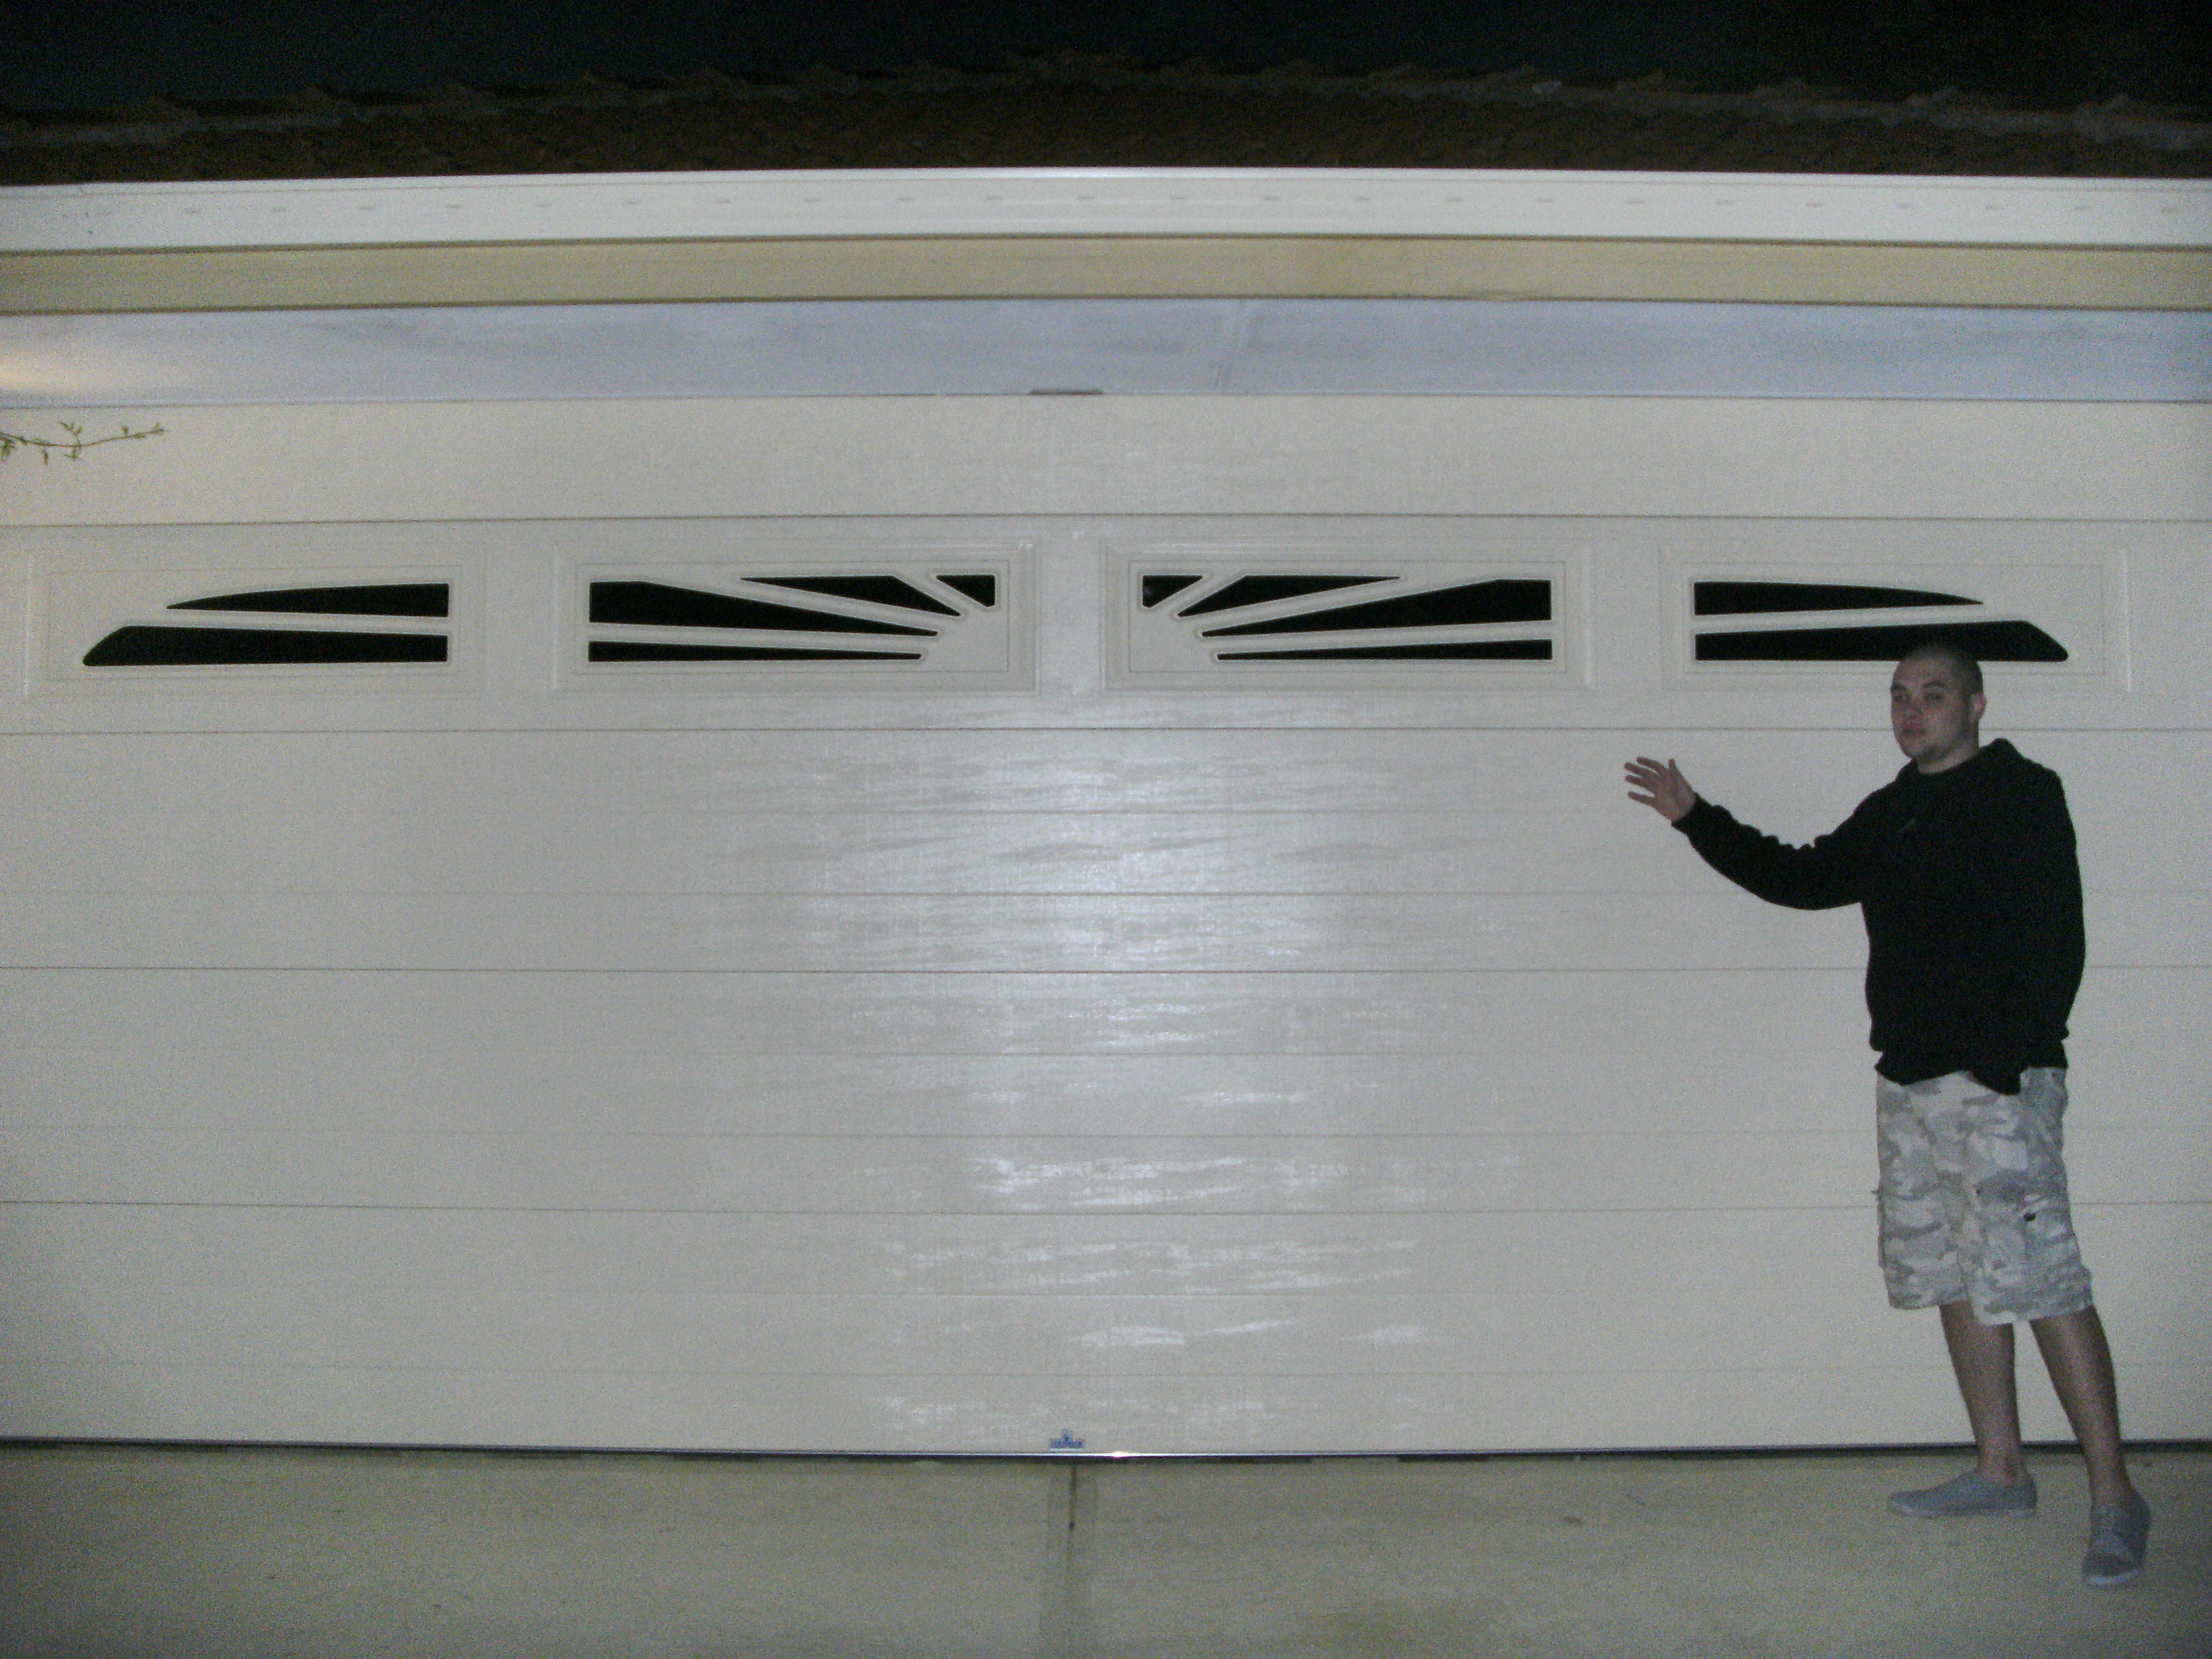 garage door pics 075 - Copy.JPG